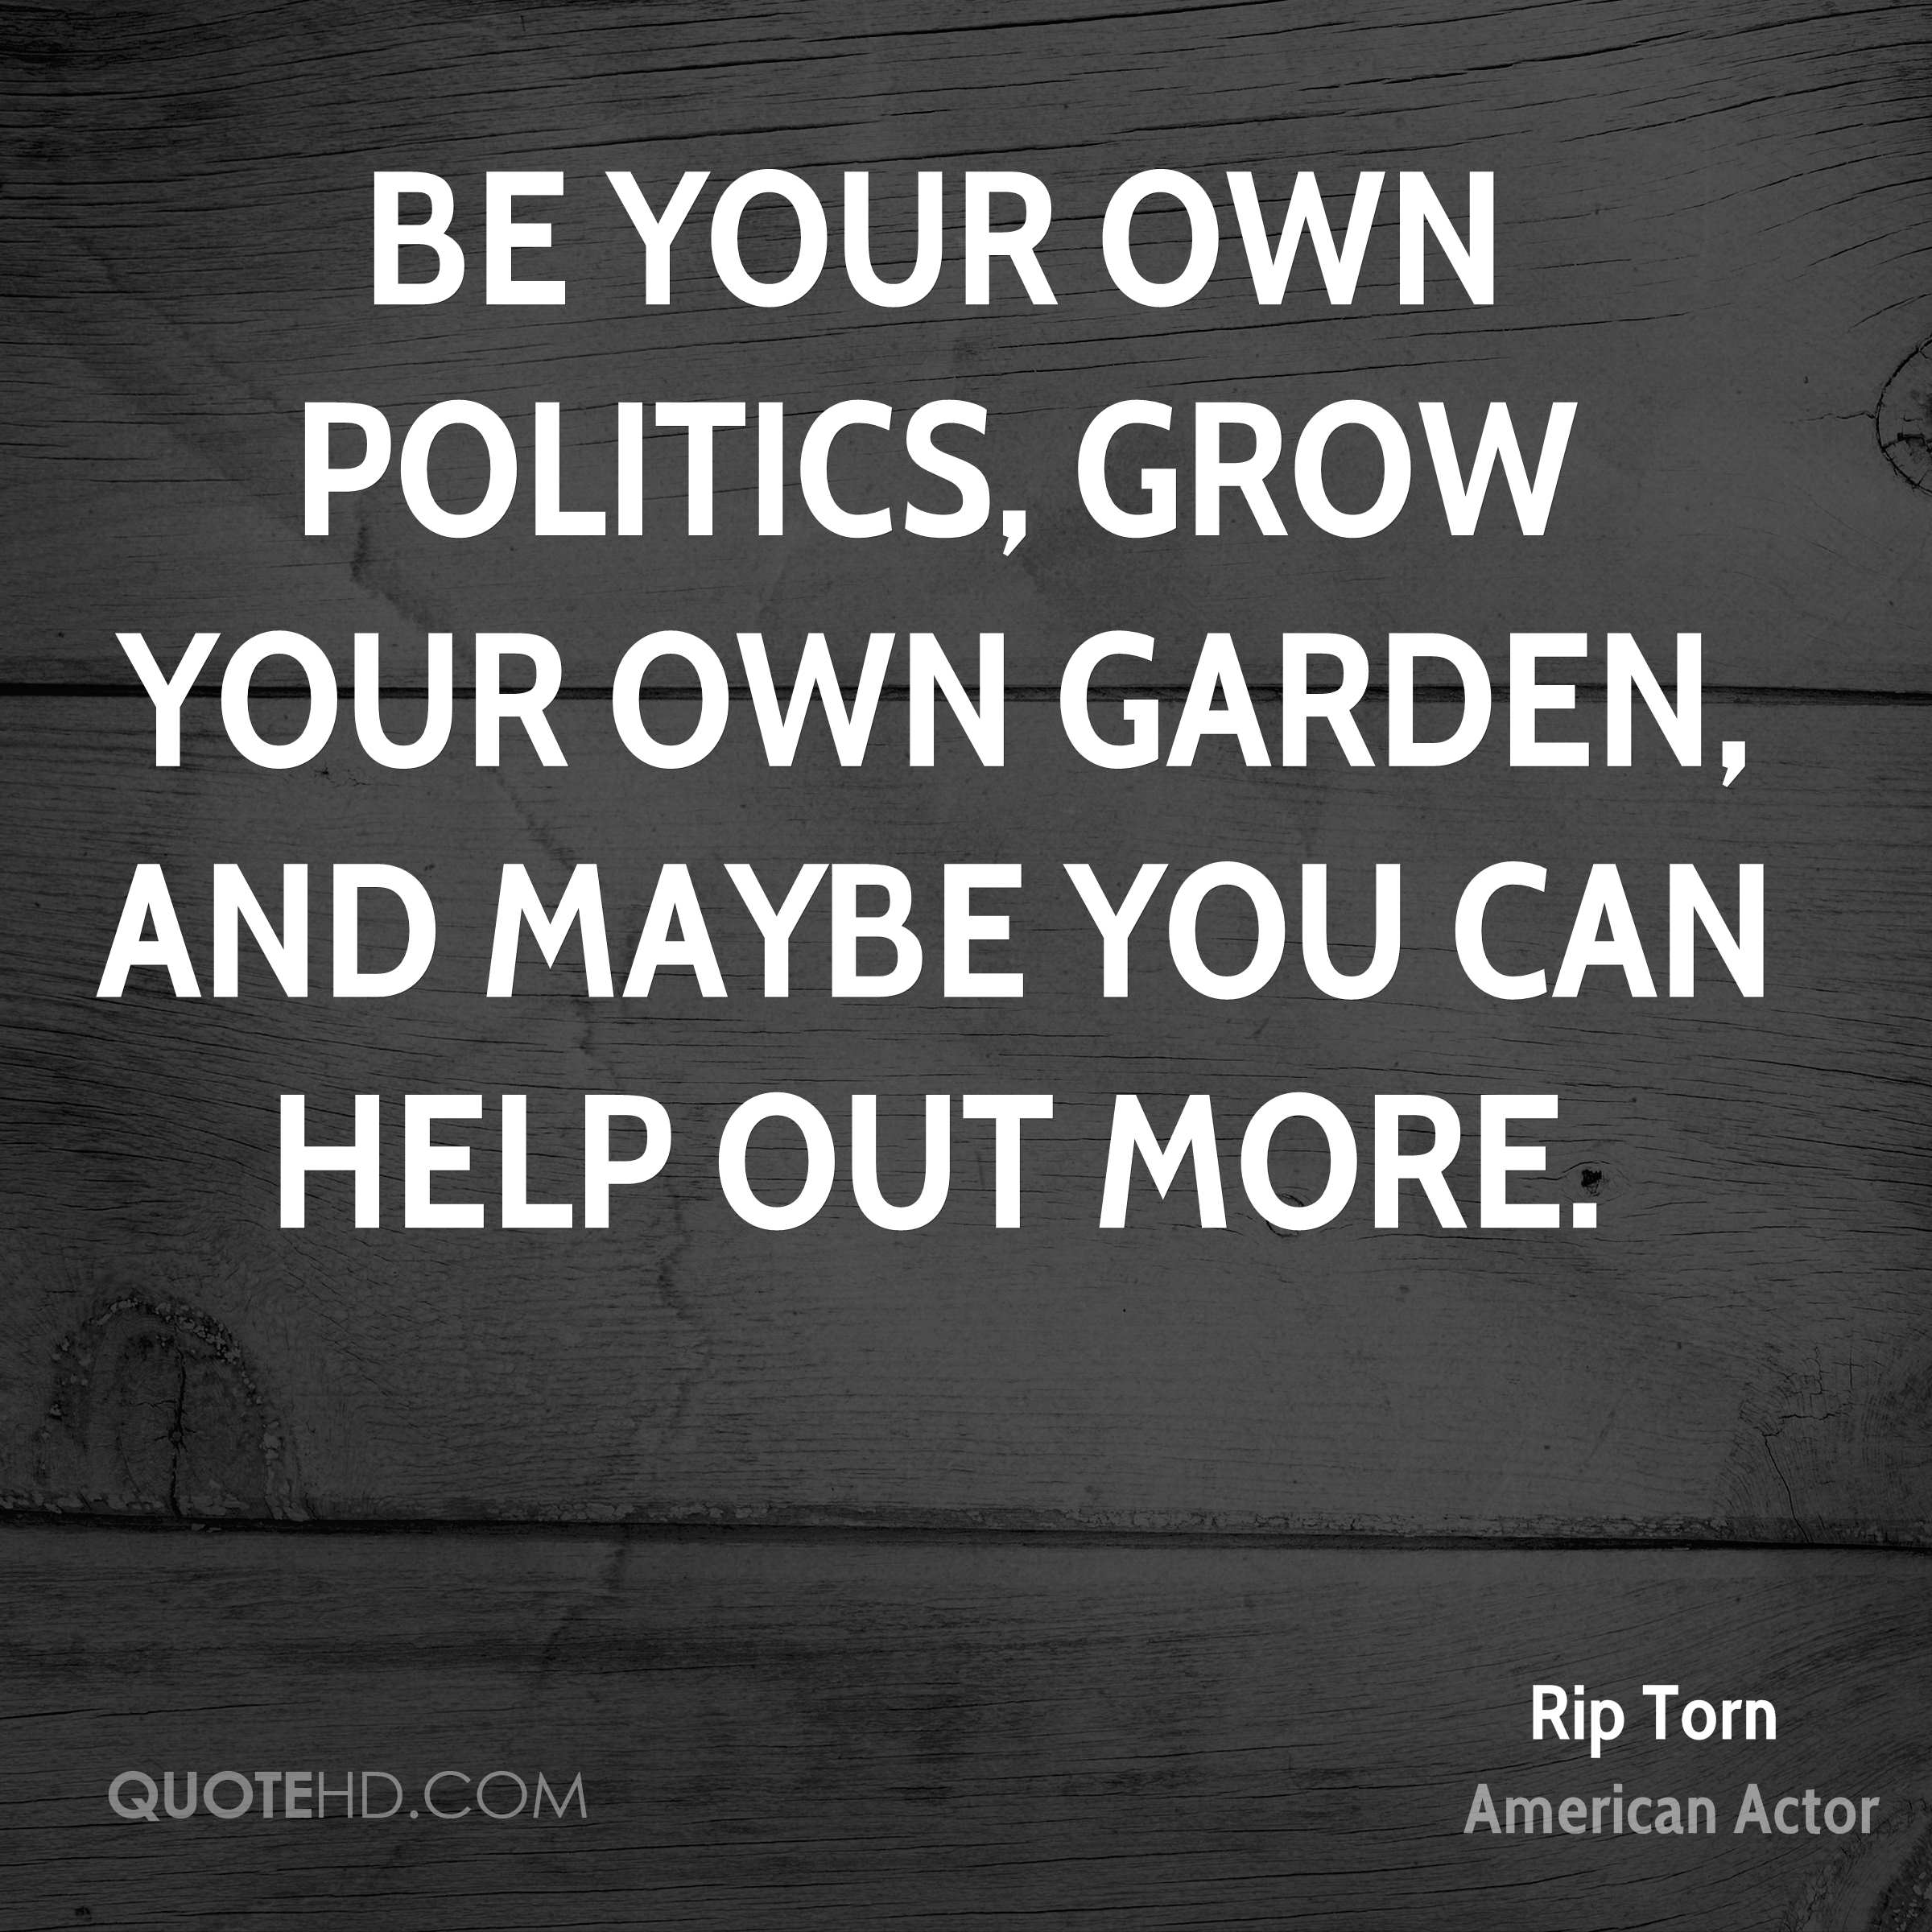 Be your own politics, grow your own garden, and maybe you can help out more.